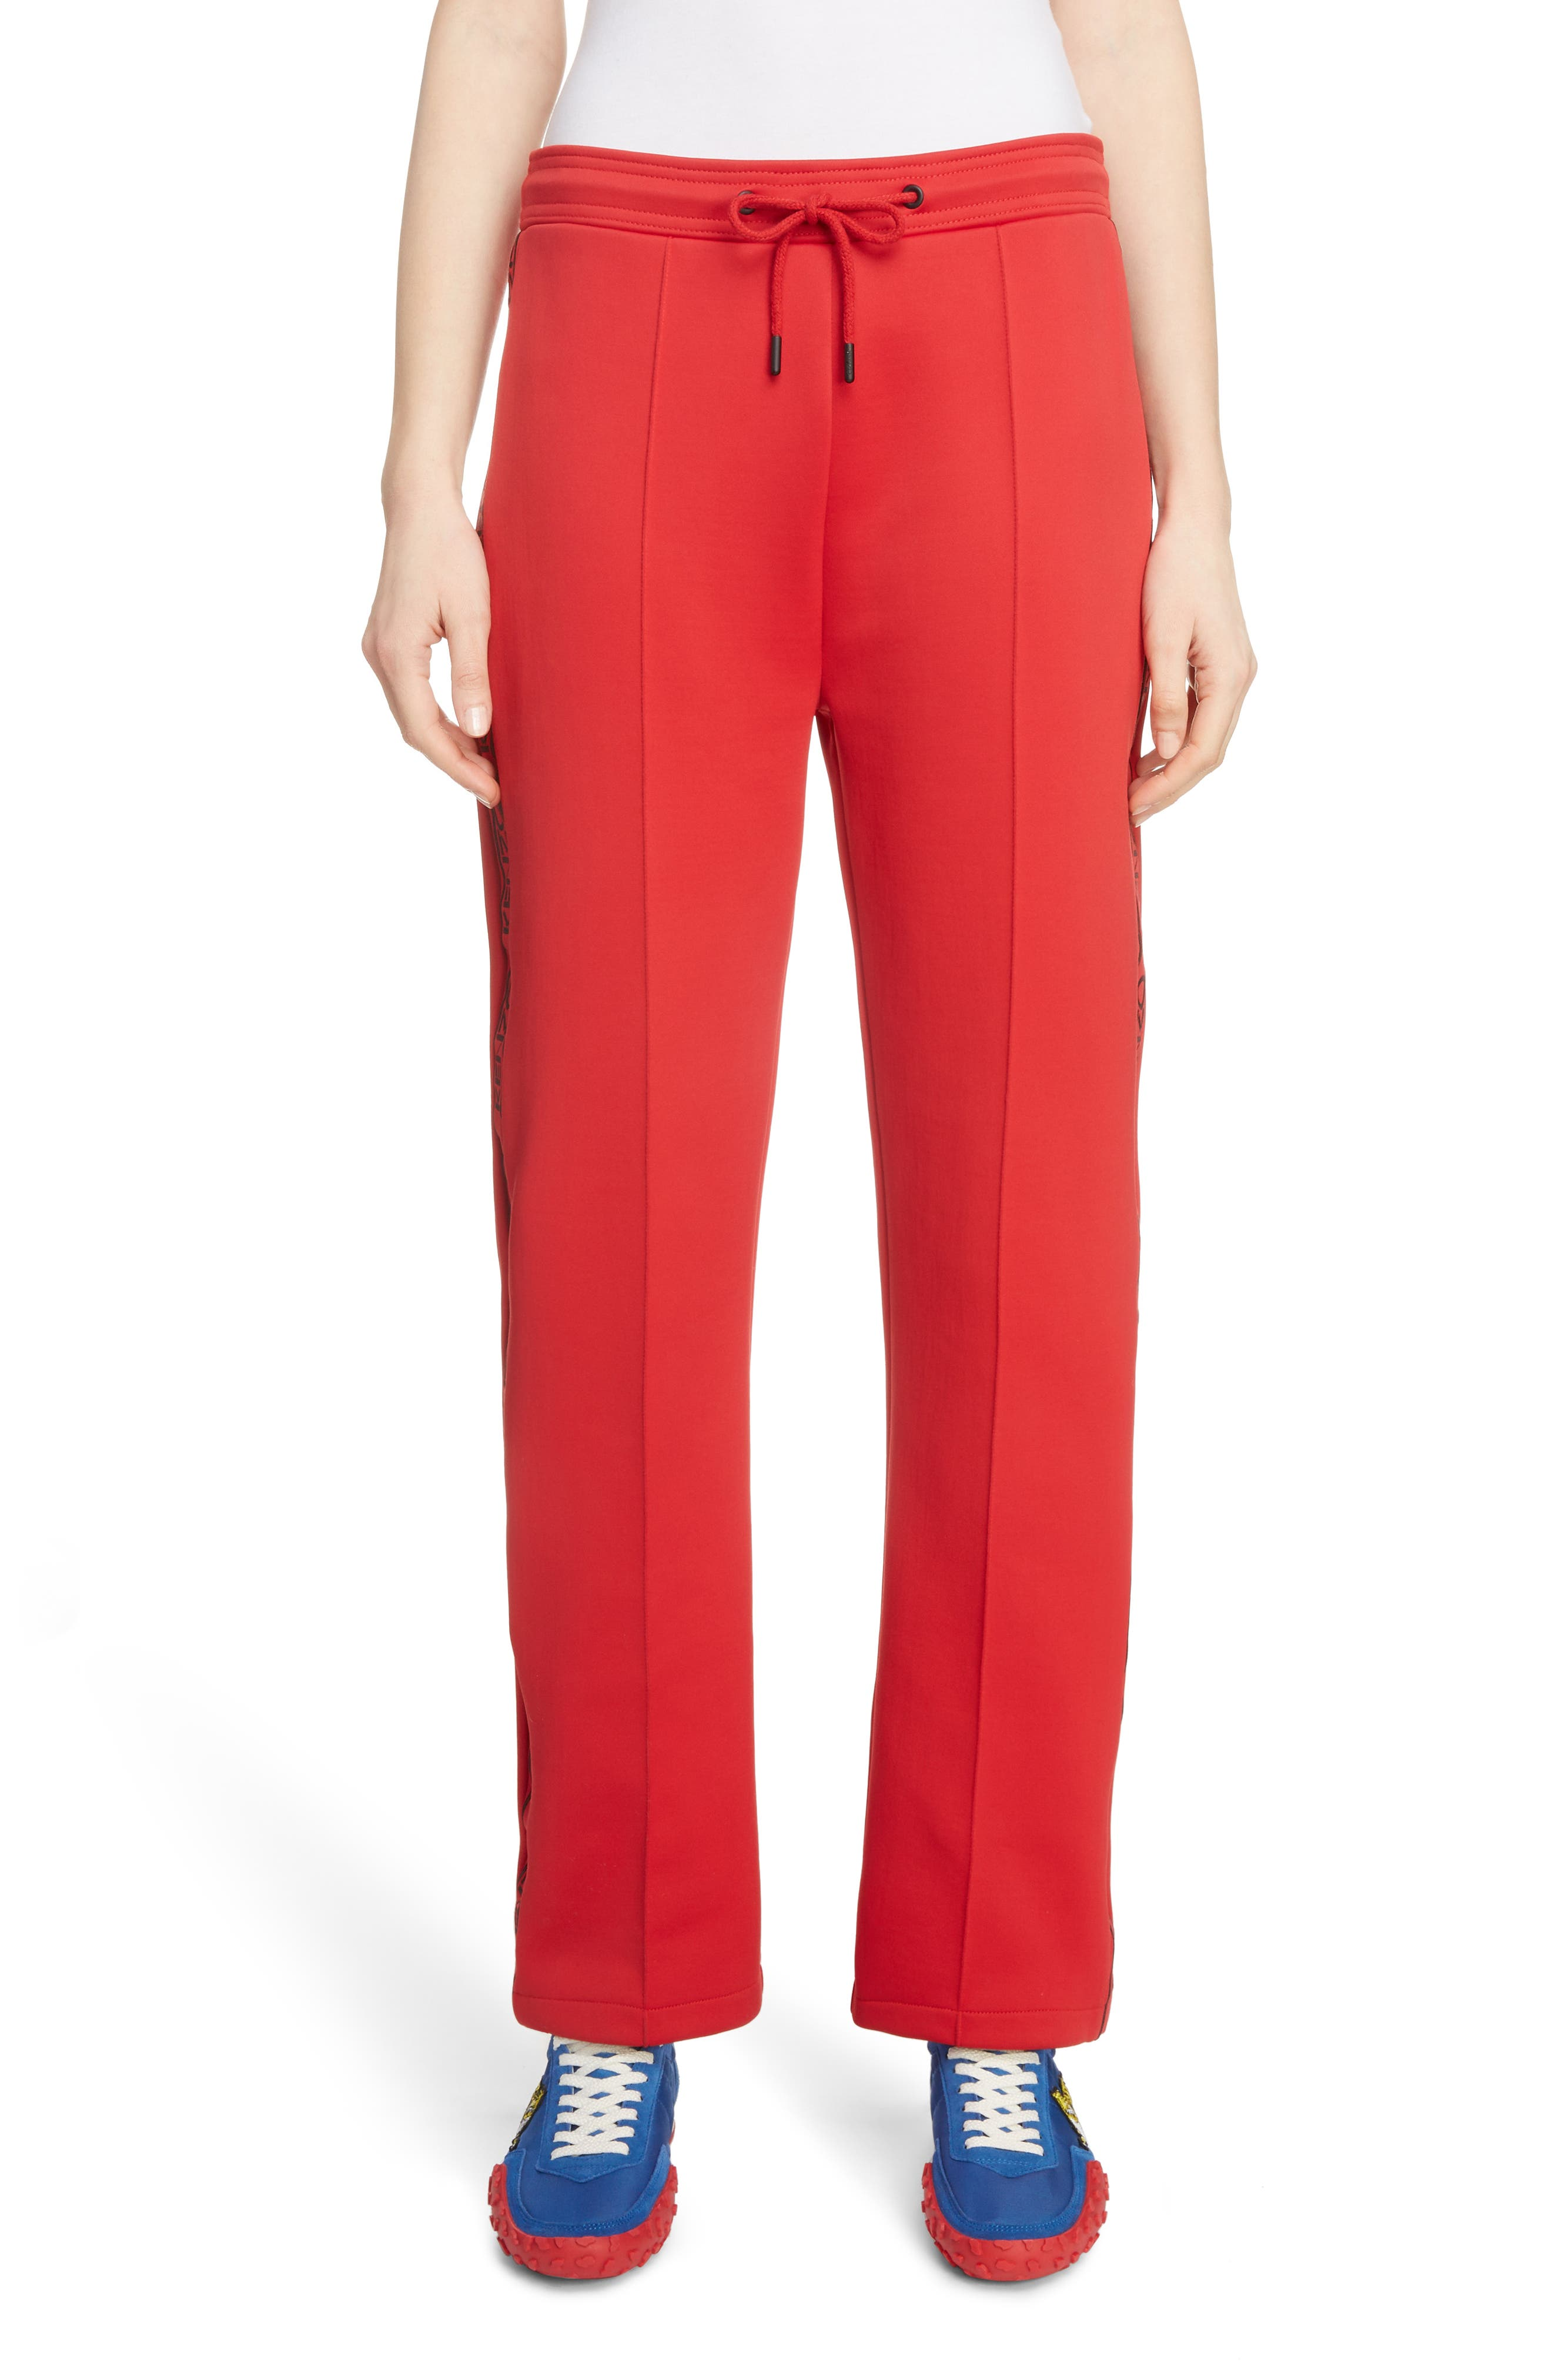 Sport Crop Track Pants,                             Main thumbnail 1, color,                             JERSEY RED